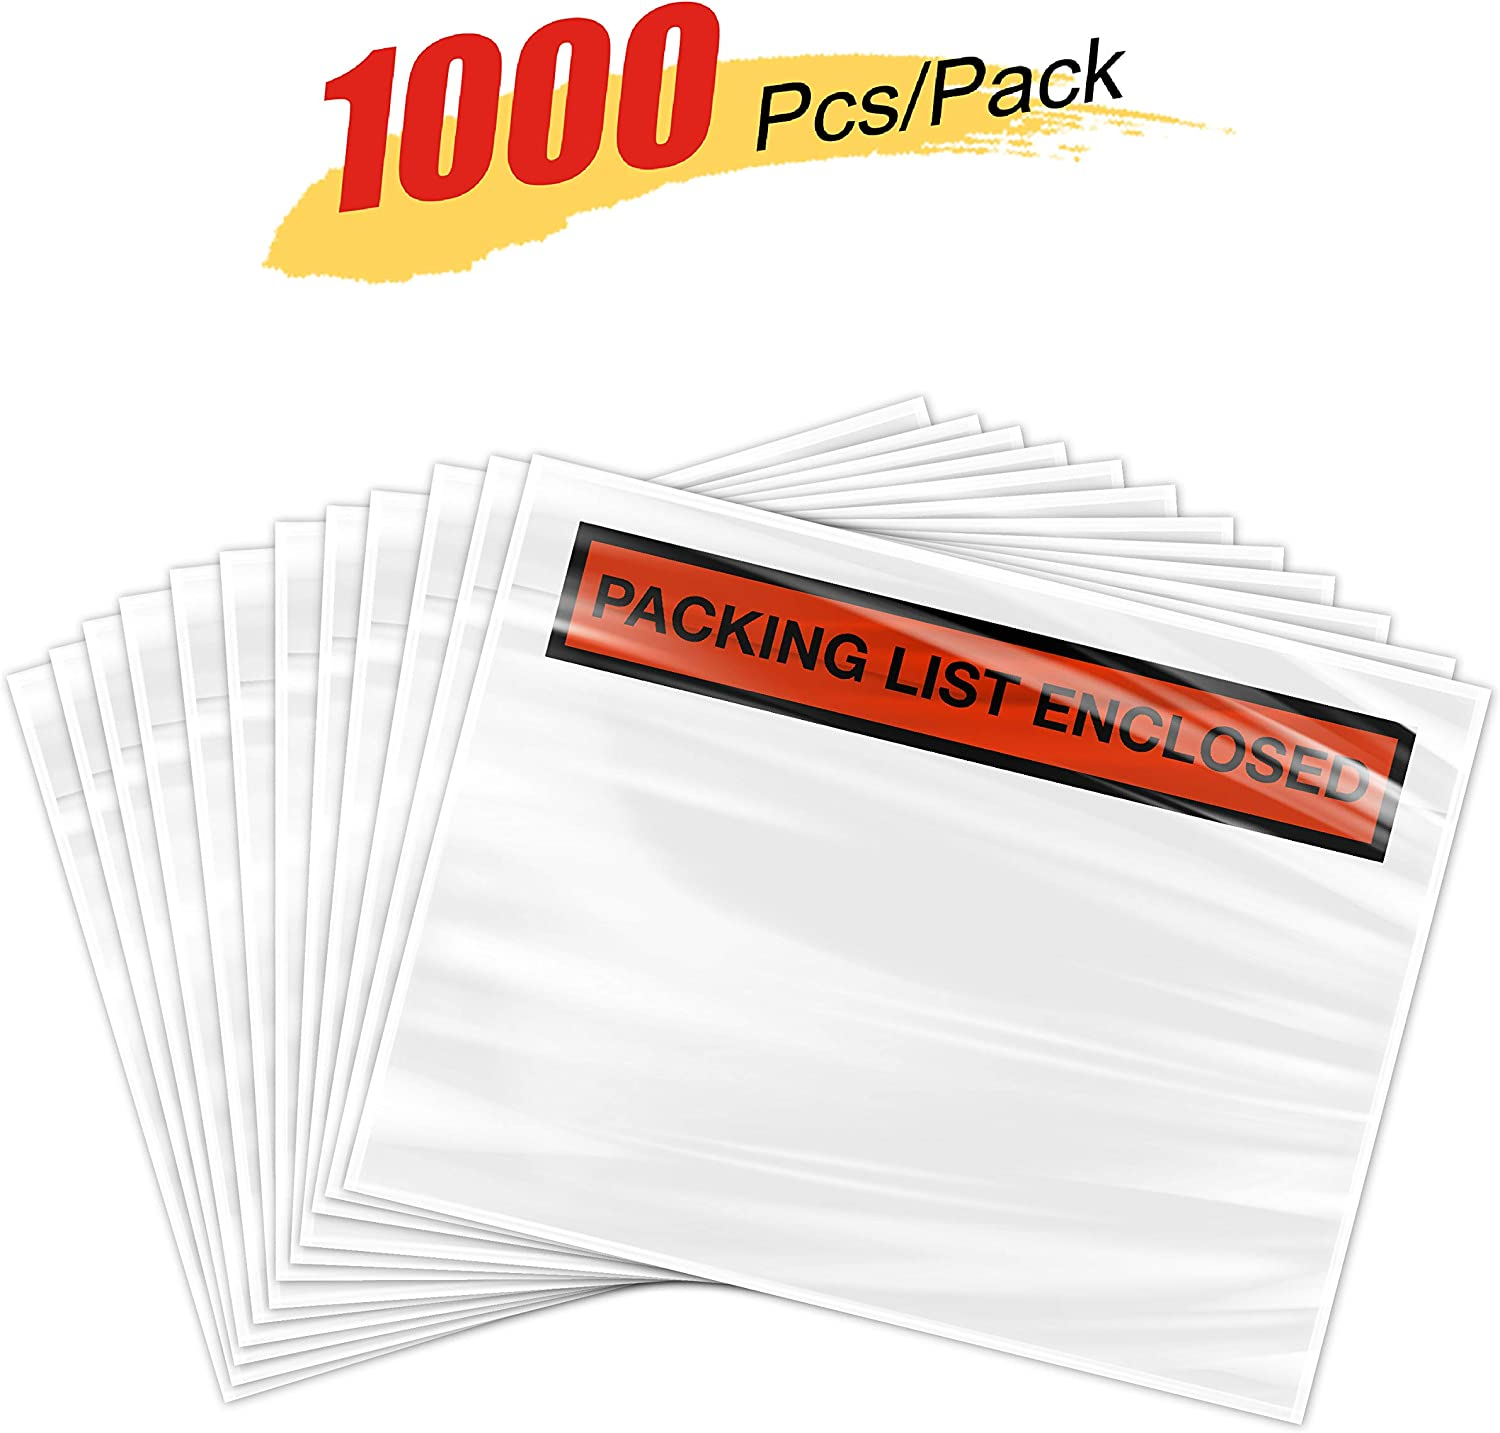 "Invoice Packing Enclosed Pouches Self-Adhesive /""Packing List Enclosed/"" Printed on Red Background 8 NET 1000 Pieces 7.5/'/' x 5.5/'/' Clear Packing List Envelopes"